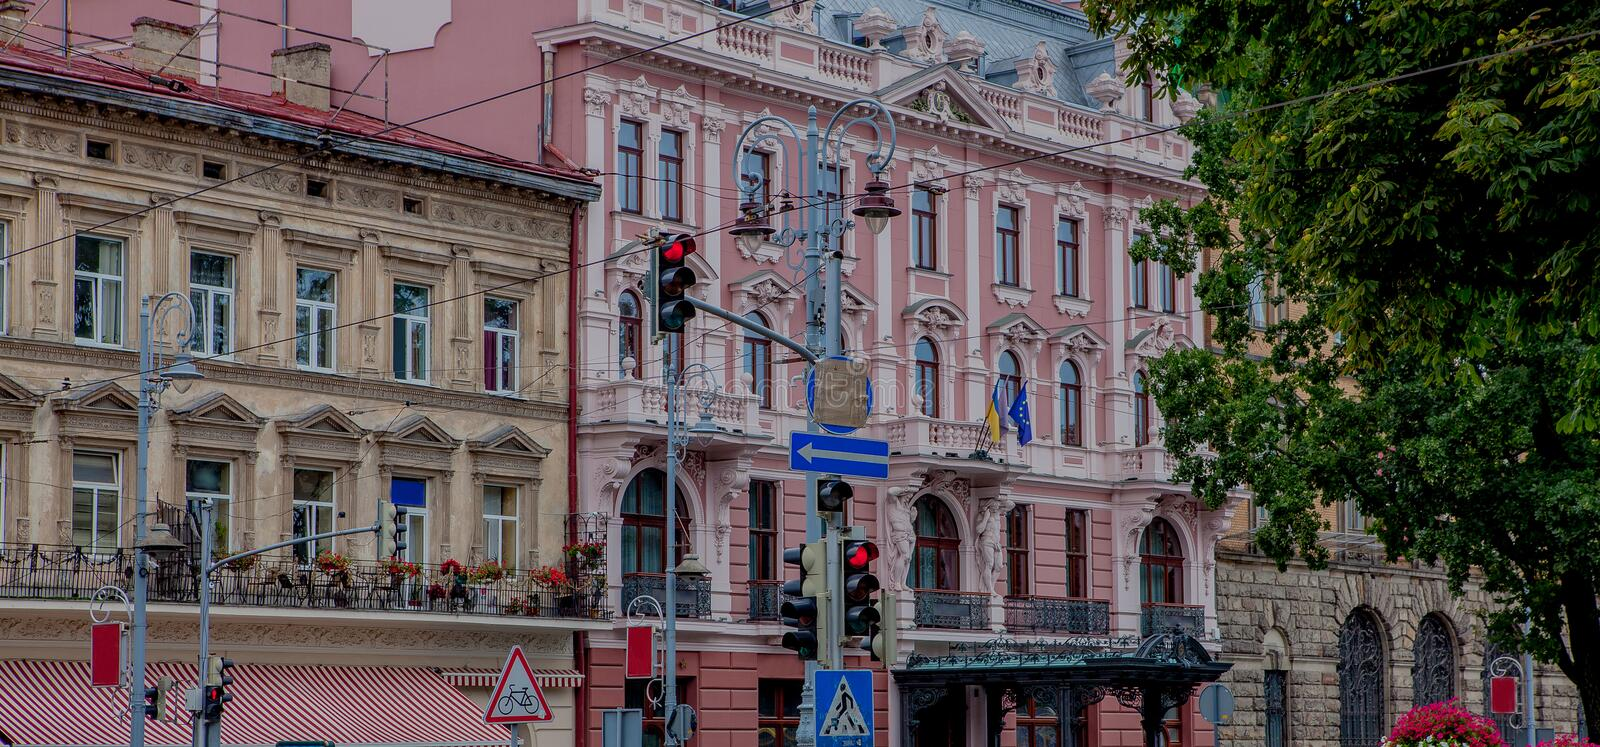 Old house in city. View on old street city in Ukraine. Road signs on the street.  royalty free stock photo